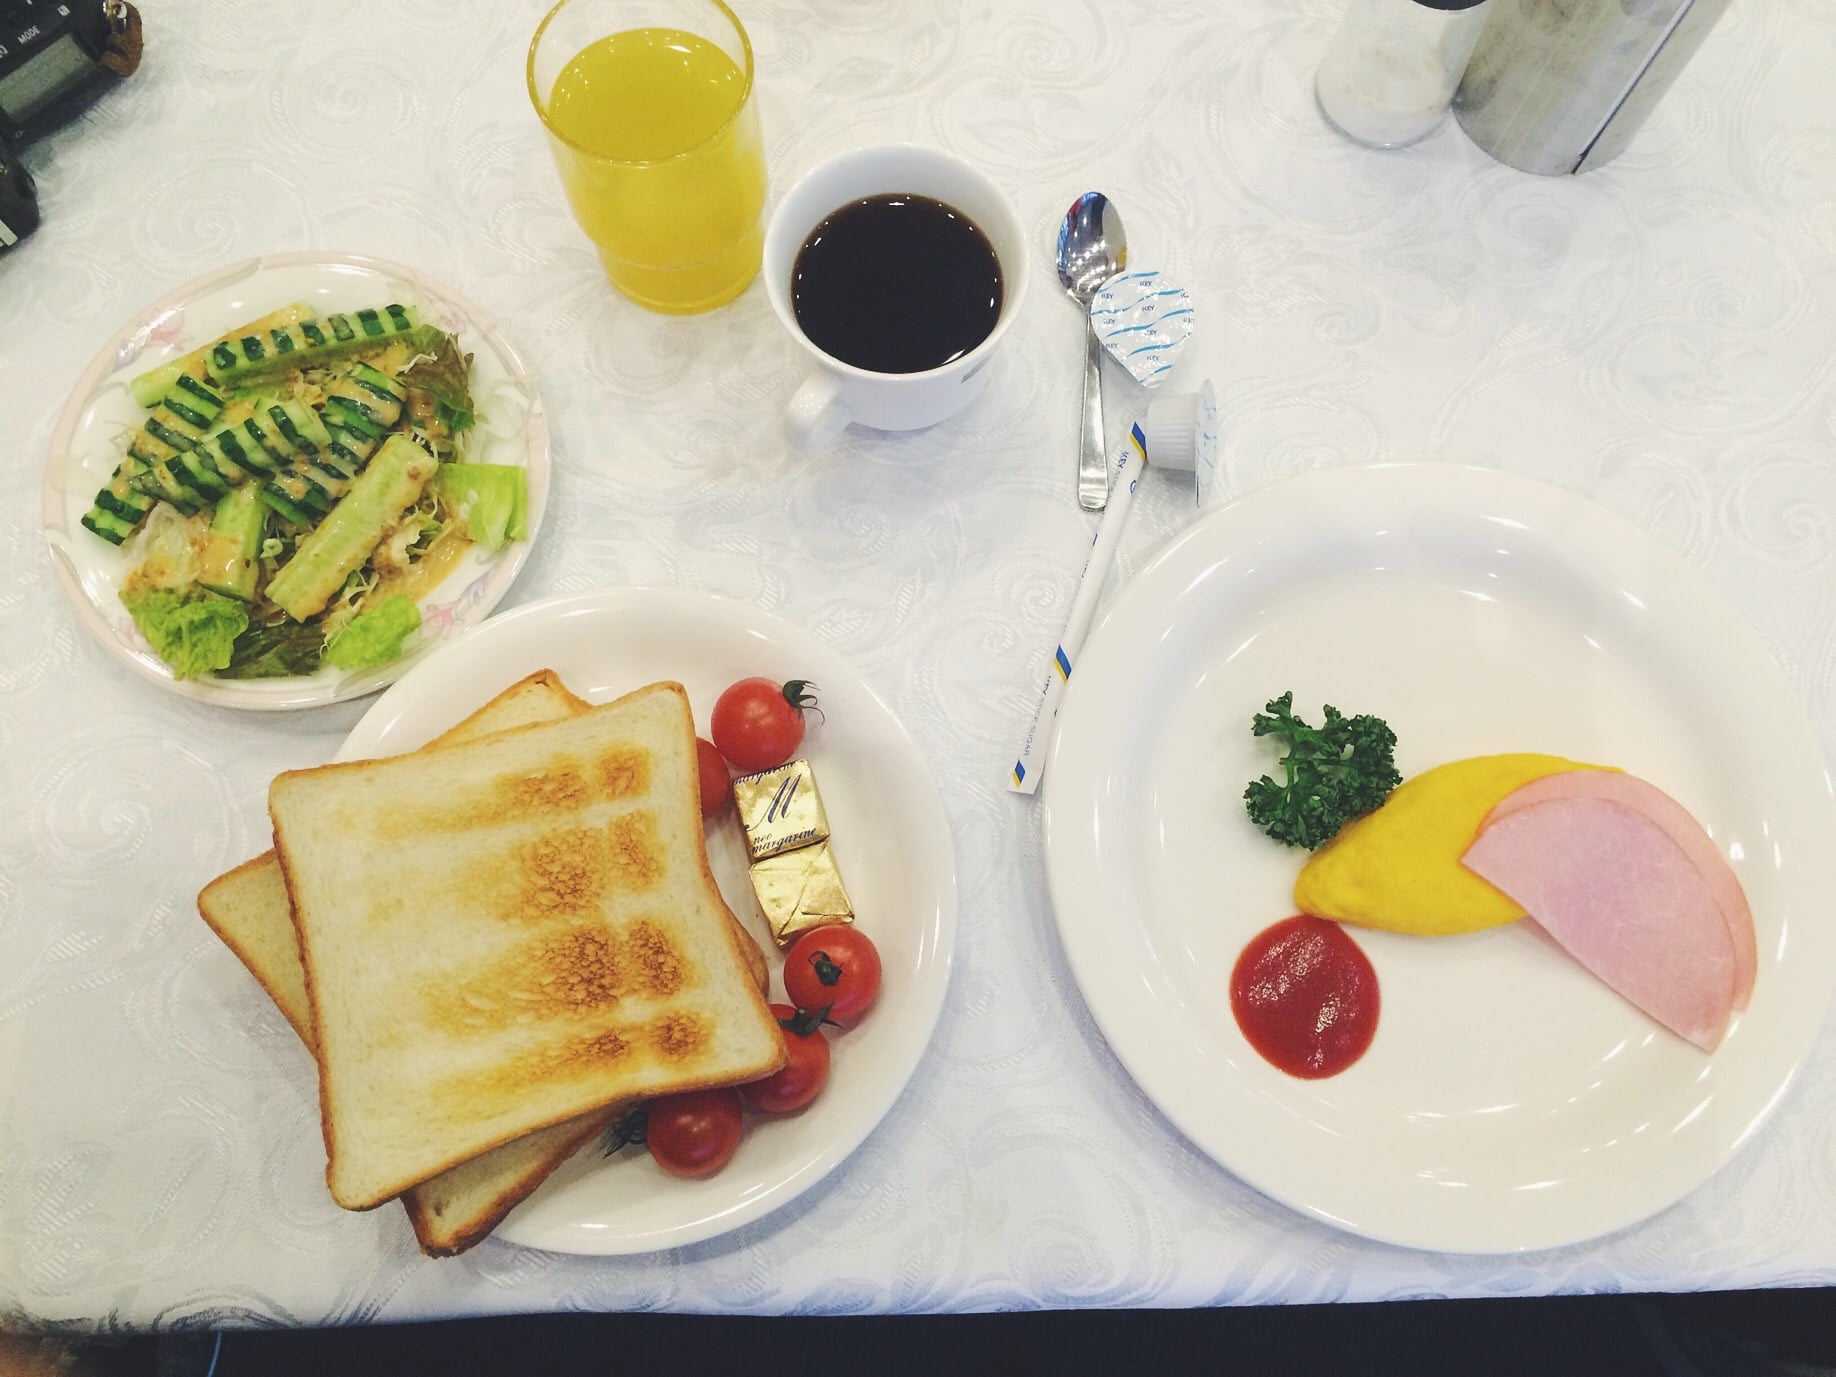 Not everything we eat is super fancy haha. Was it good? Lets just say we appreciate free food.